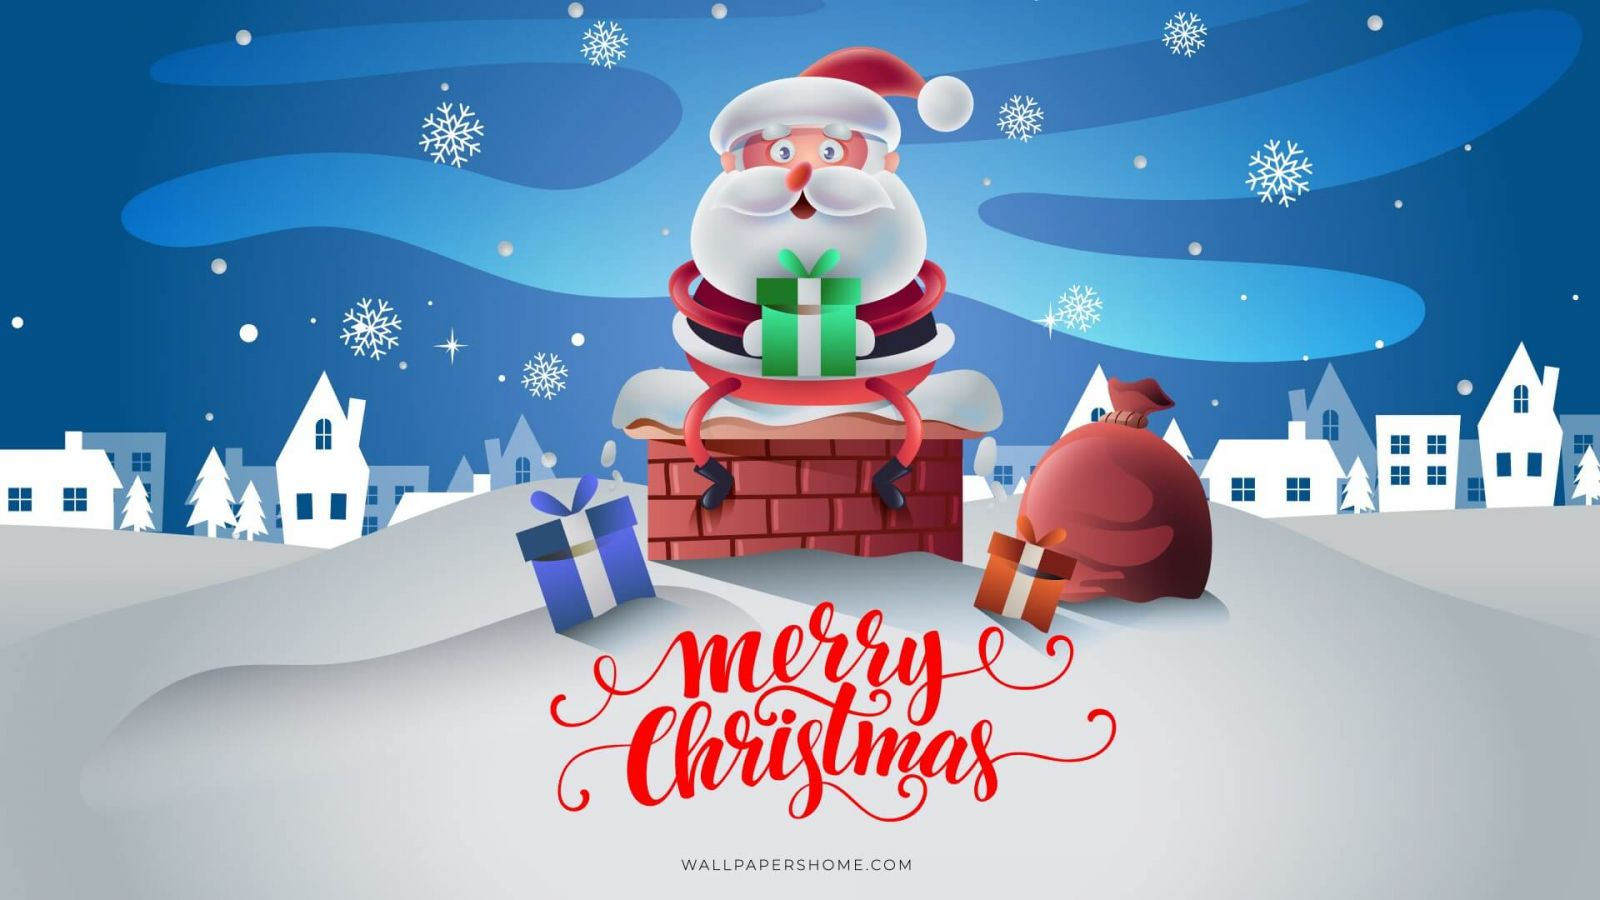 Mac HD Christmas wallpaper